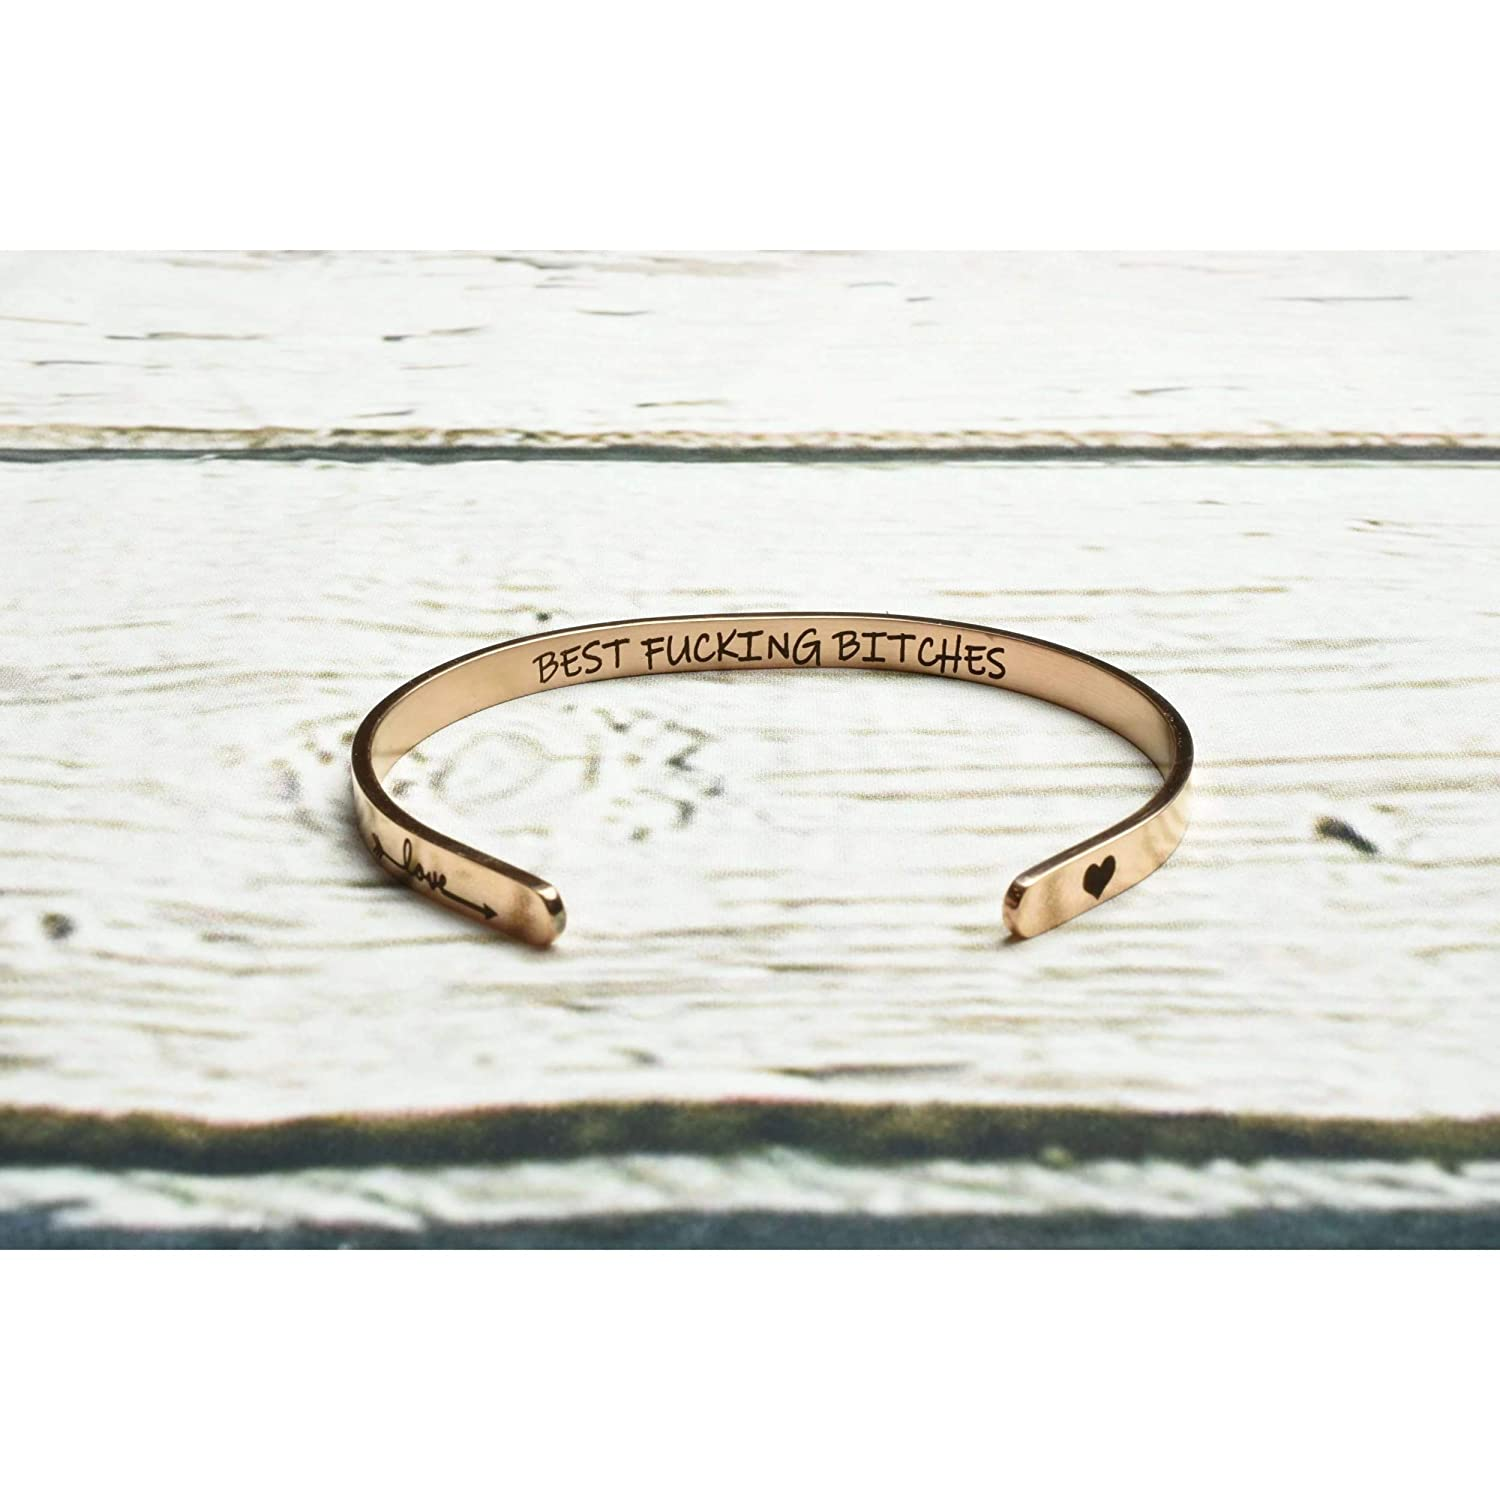 Pink Box Inspirational Gifts for Women Cuff Bracelet Bangle Stainless Steel Engraved